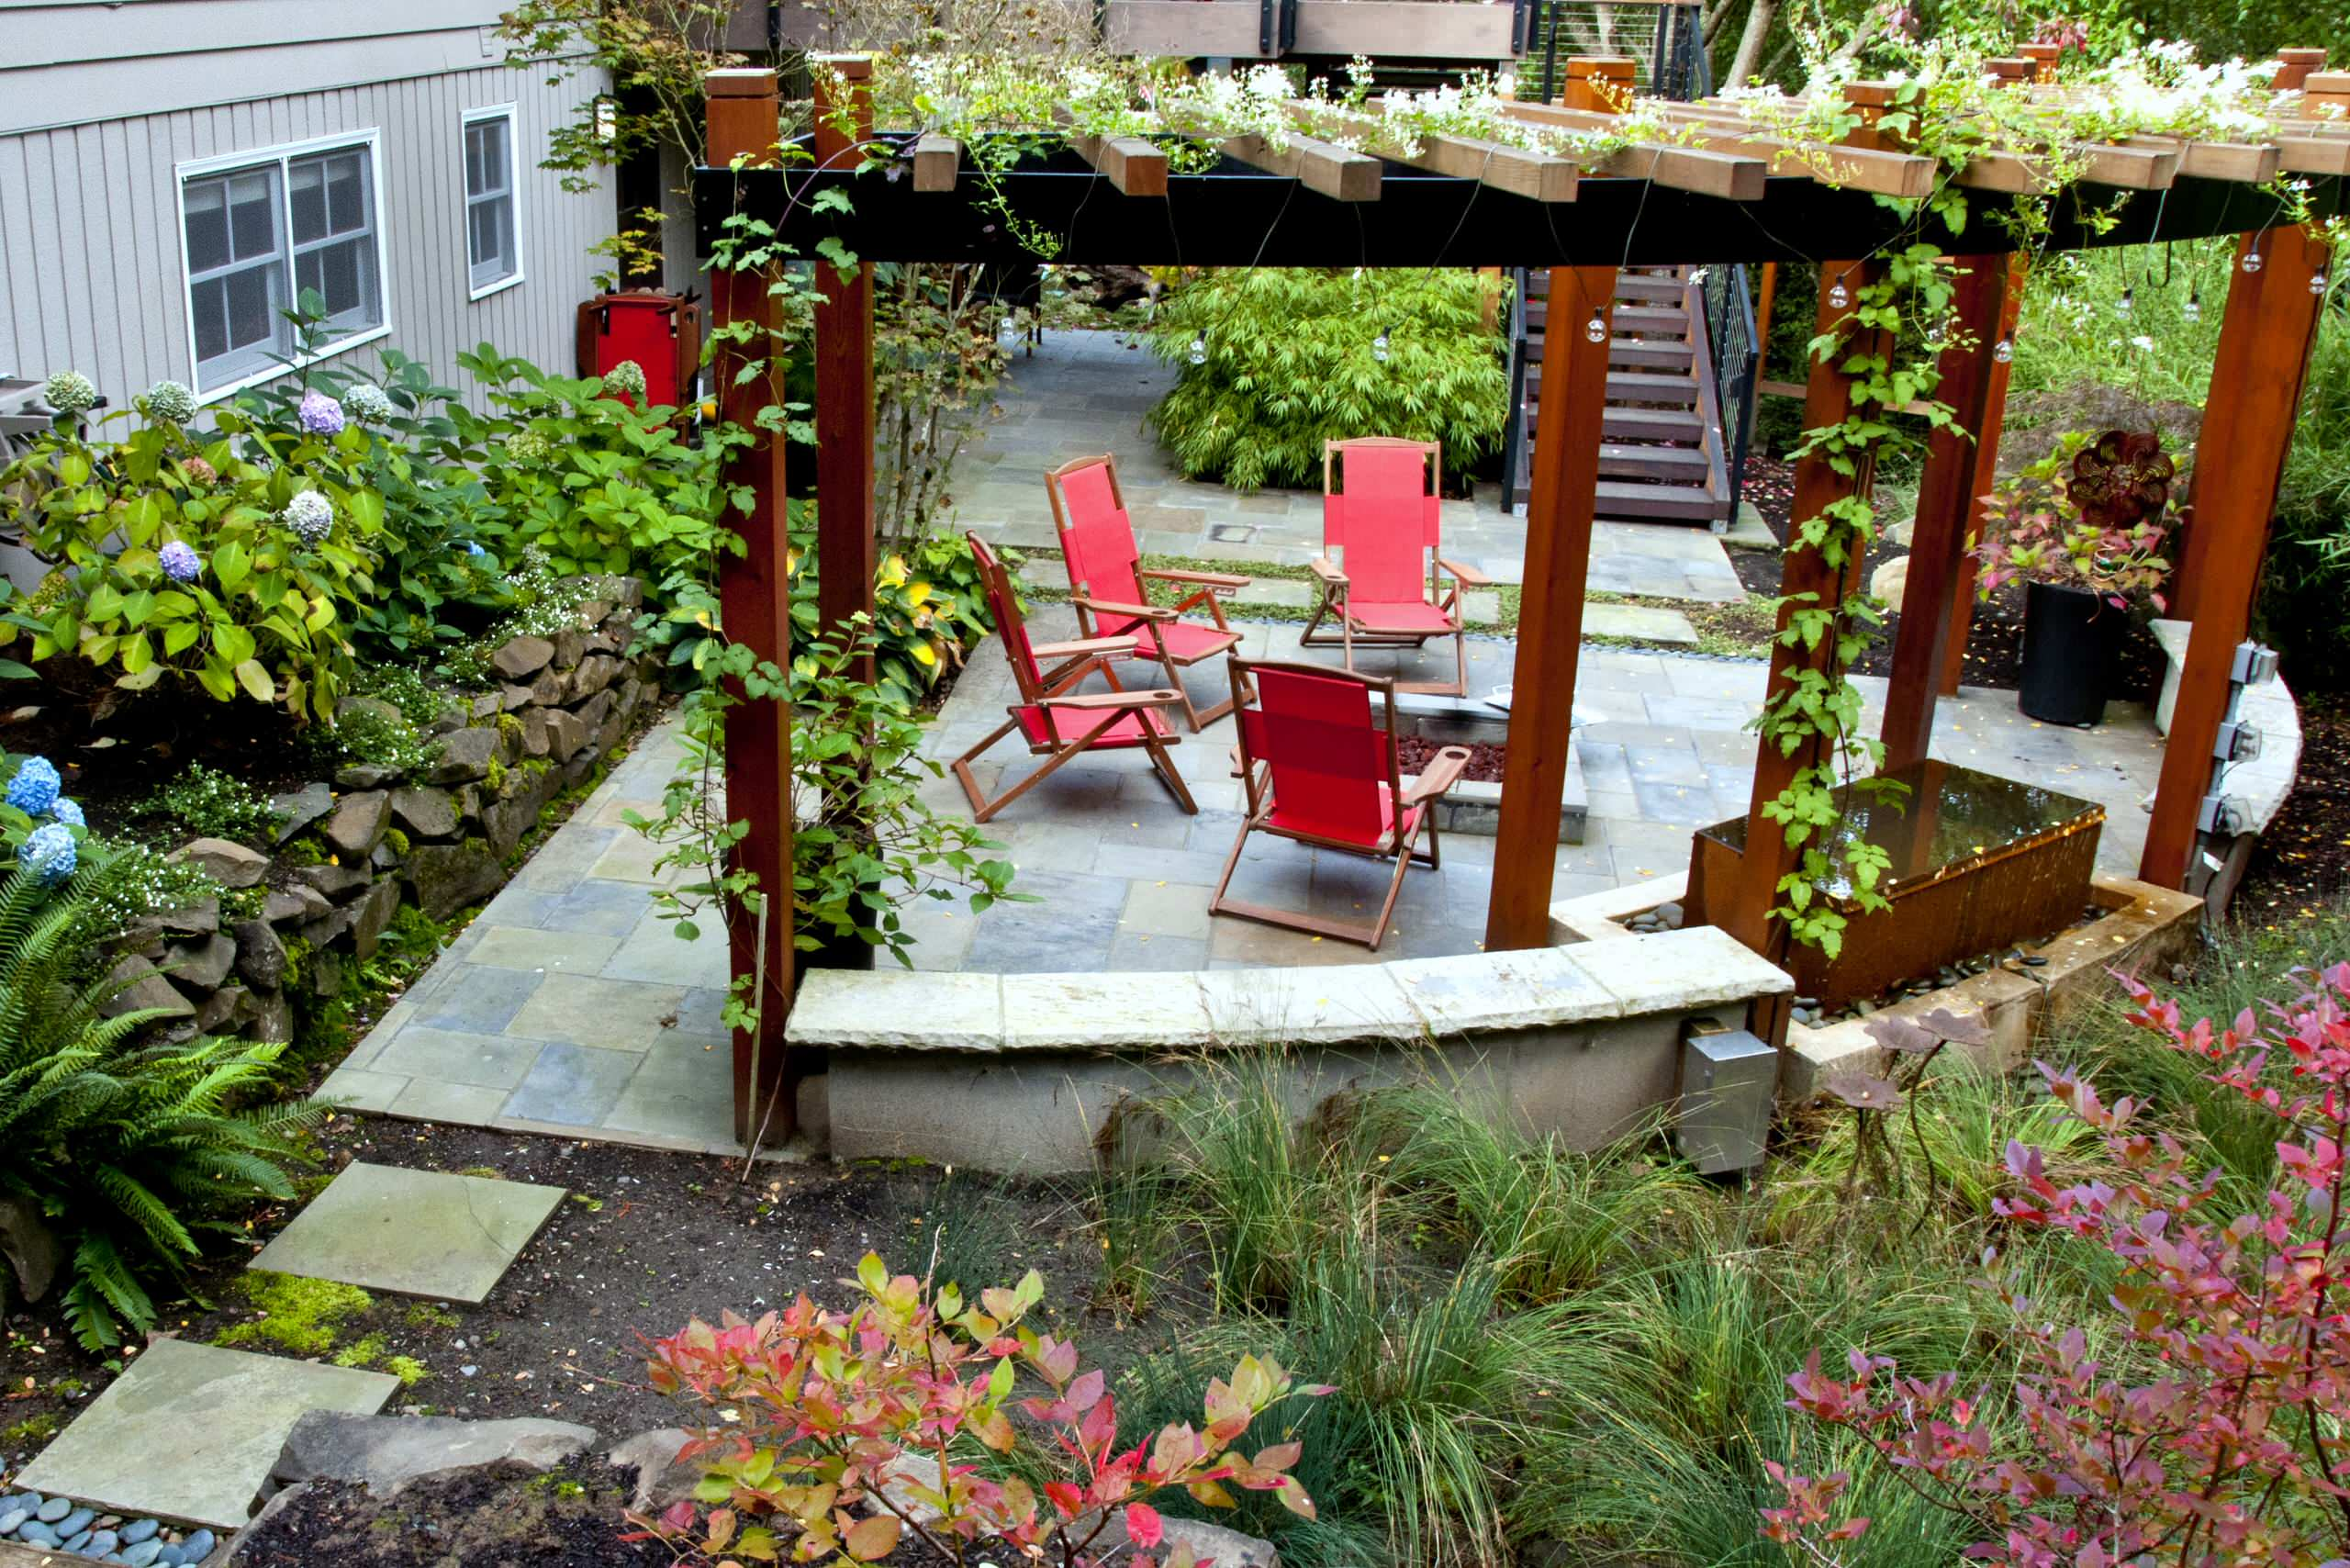 Inspiring Exterior House plus Pergola Ideas: Curved Garden Wall Plus Fire Pit And Flagstone Also Folding Chairs With Hydrangea For Pergola Ideas Also Rain Garden Plus Tall Grasses With Water Feature And Climbing Plants On Arbour